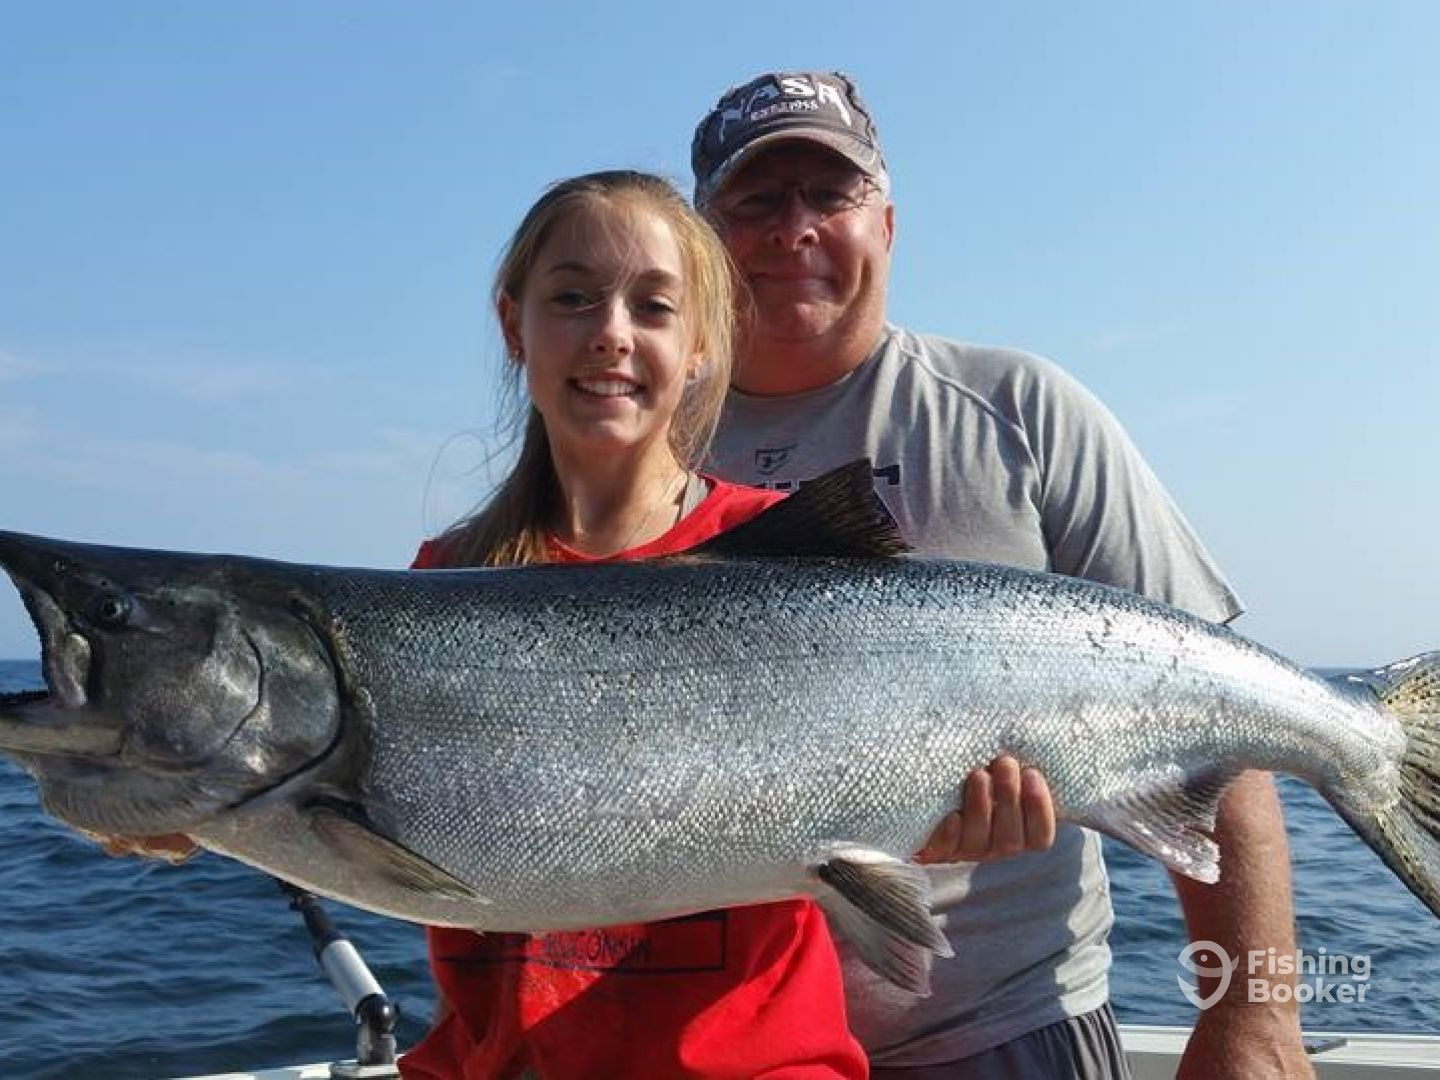 Rv charters lake michigan sportfish algoma wi for Algoma fishing charters